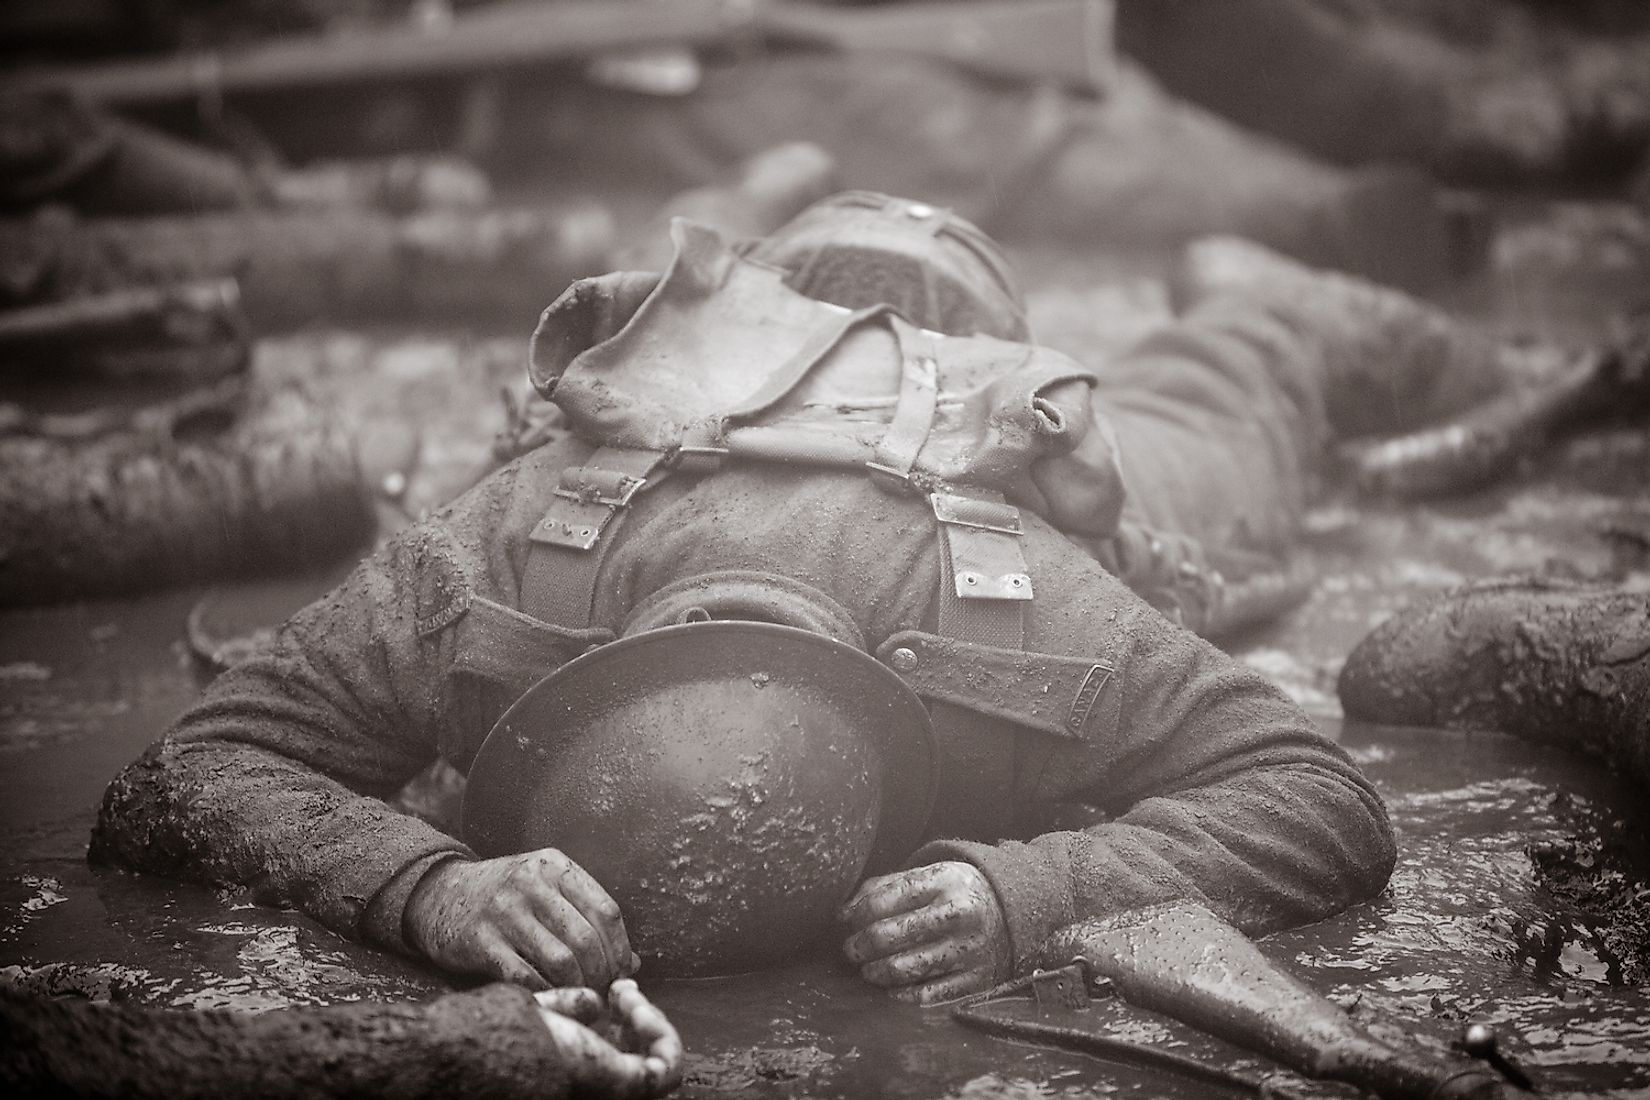 Dead soldier on the Western Front. Image credit: Hedley Lamarr/Shutterstock.com